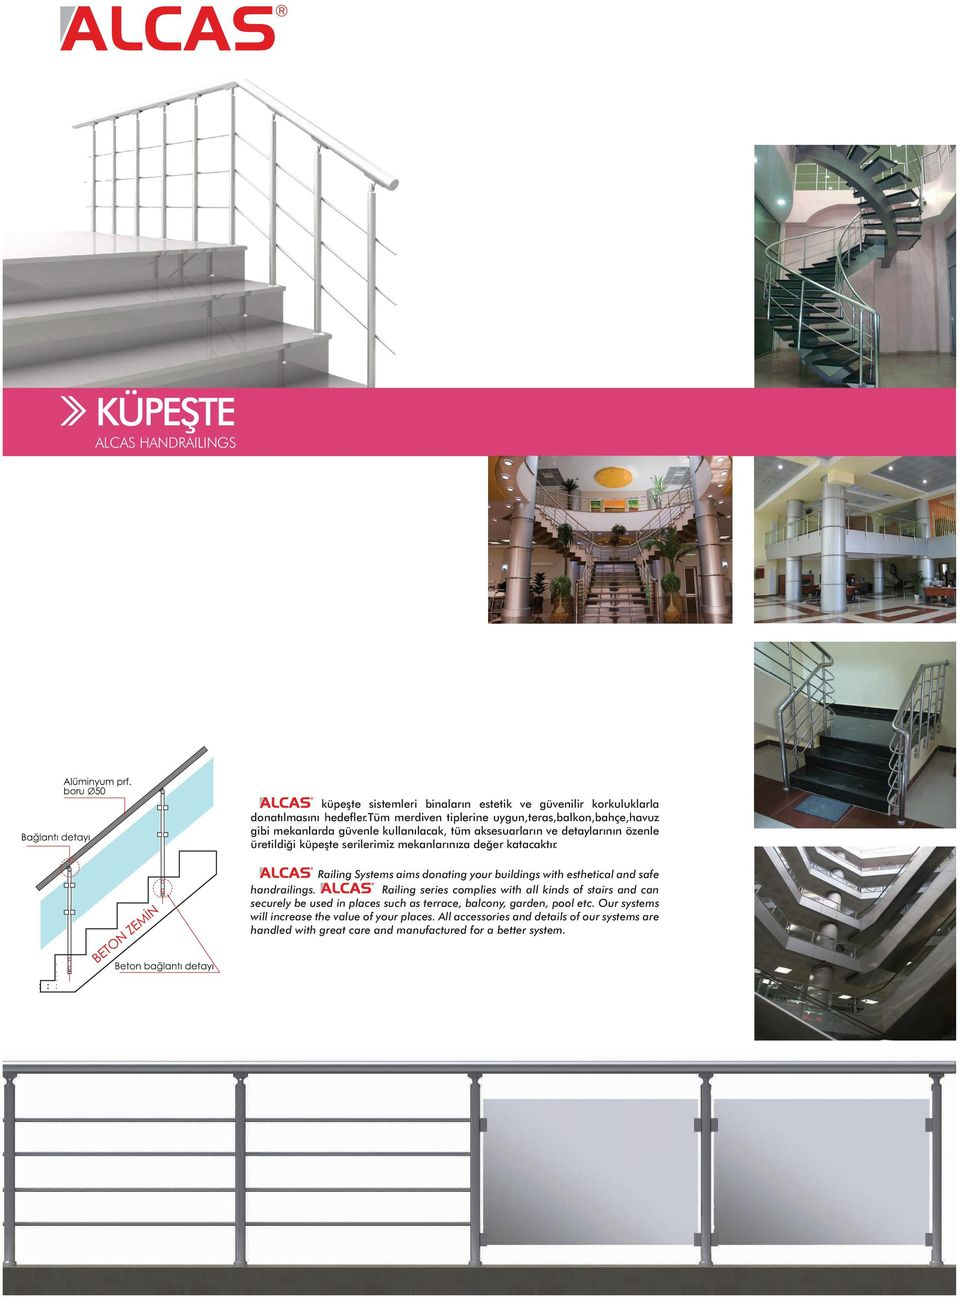 mekanlarınıza değer katacaktır. Railing Systems aims donating your buildings with esthetical and safe handrailings.